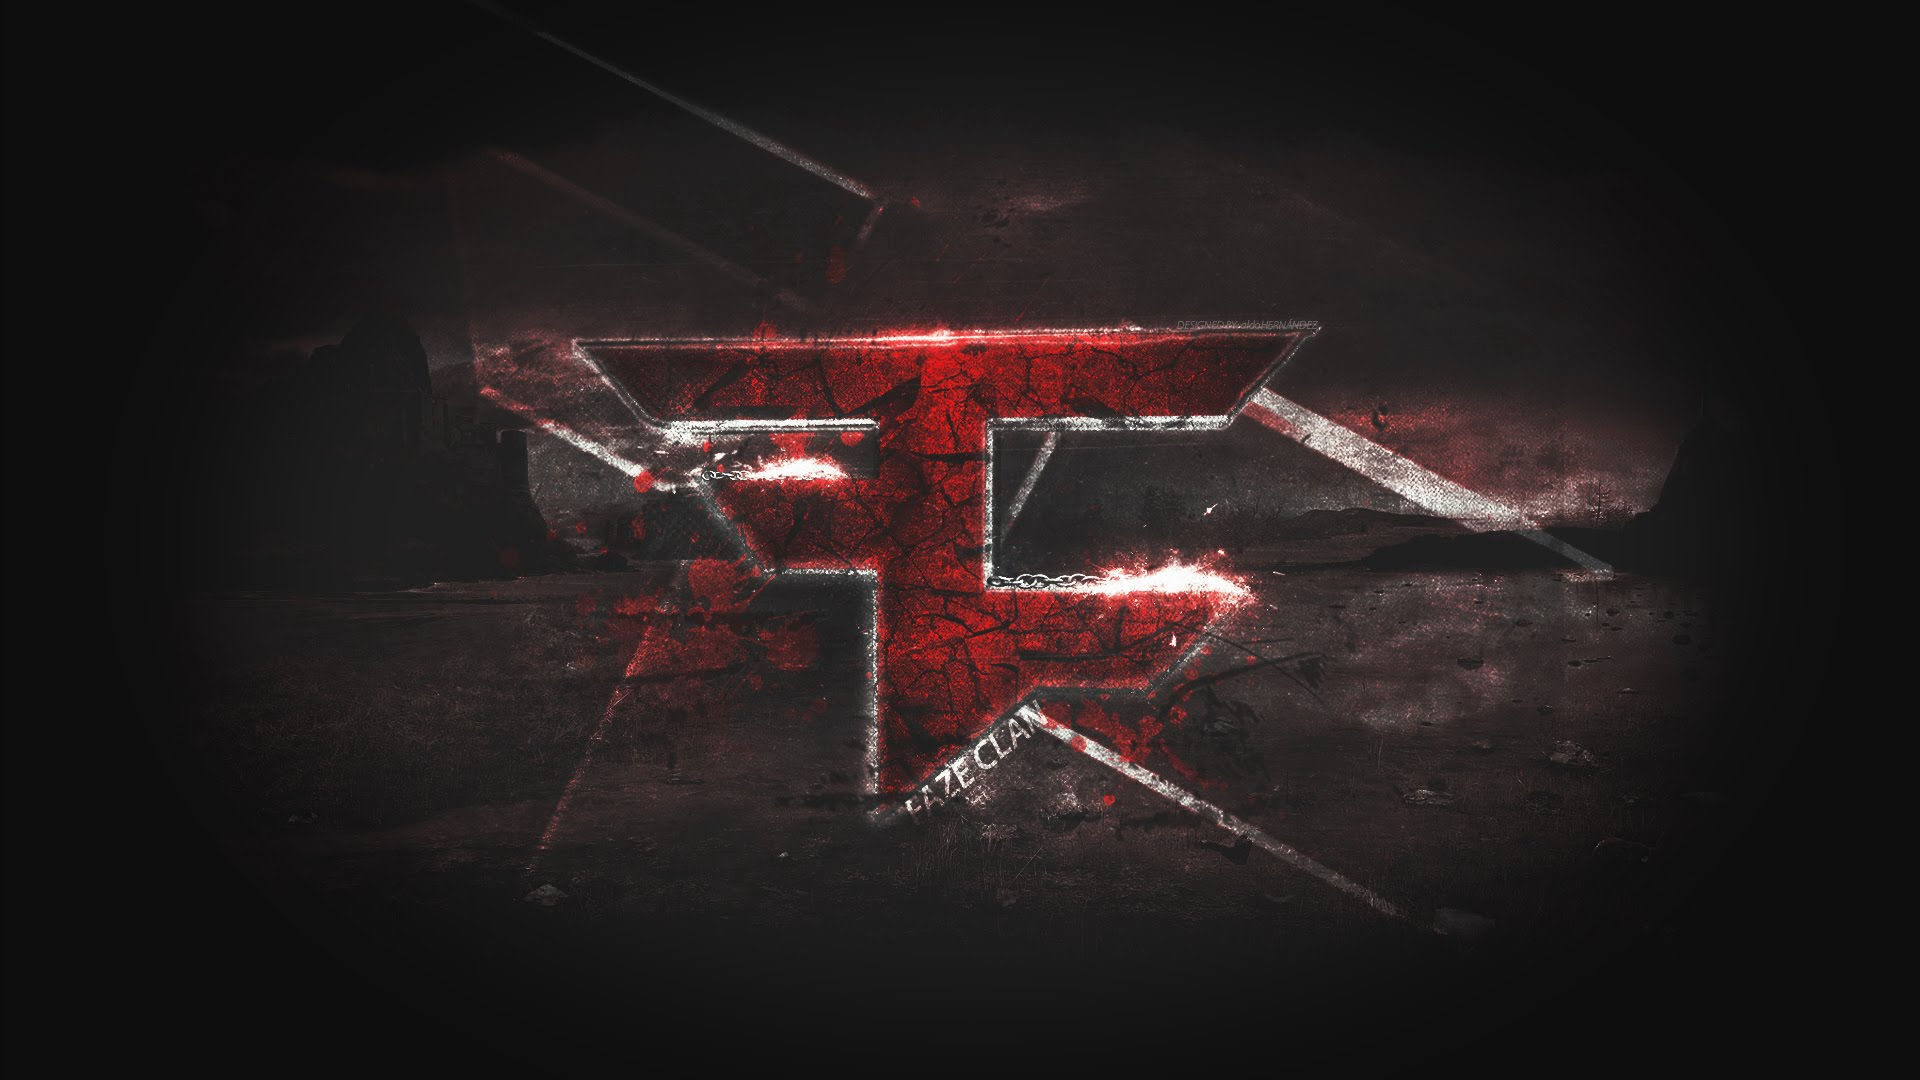 Speed Art 44 FaZe Clan Wallpaper GFX 1920x1080